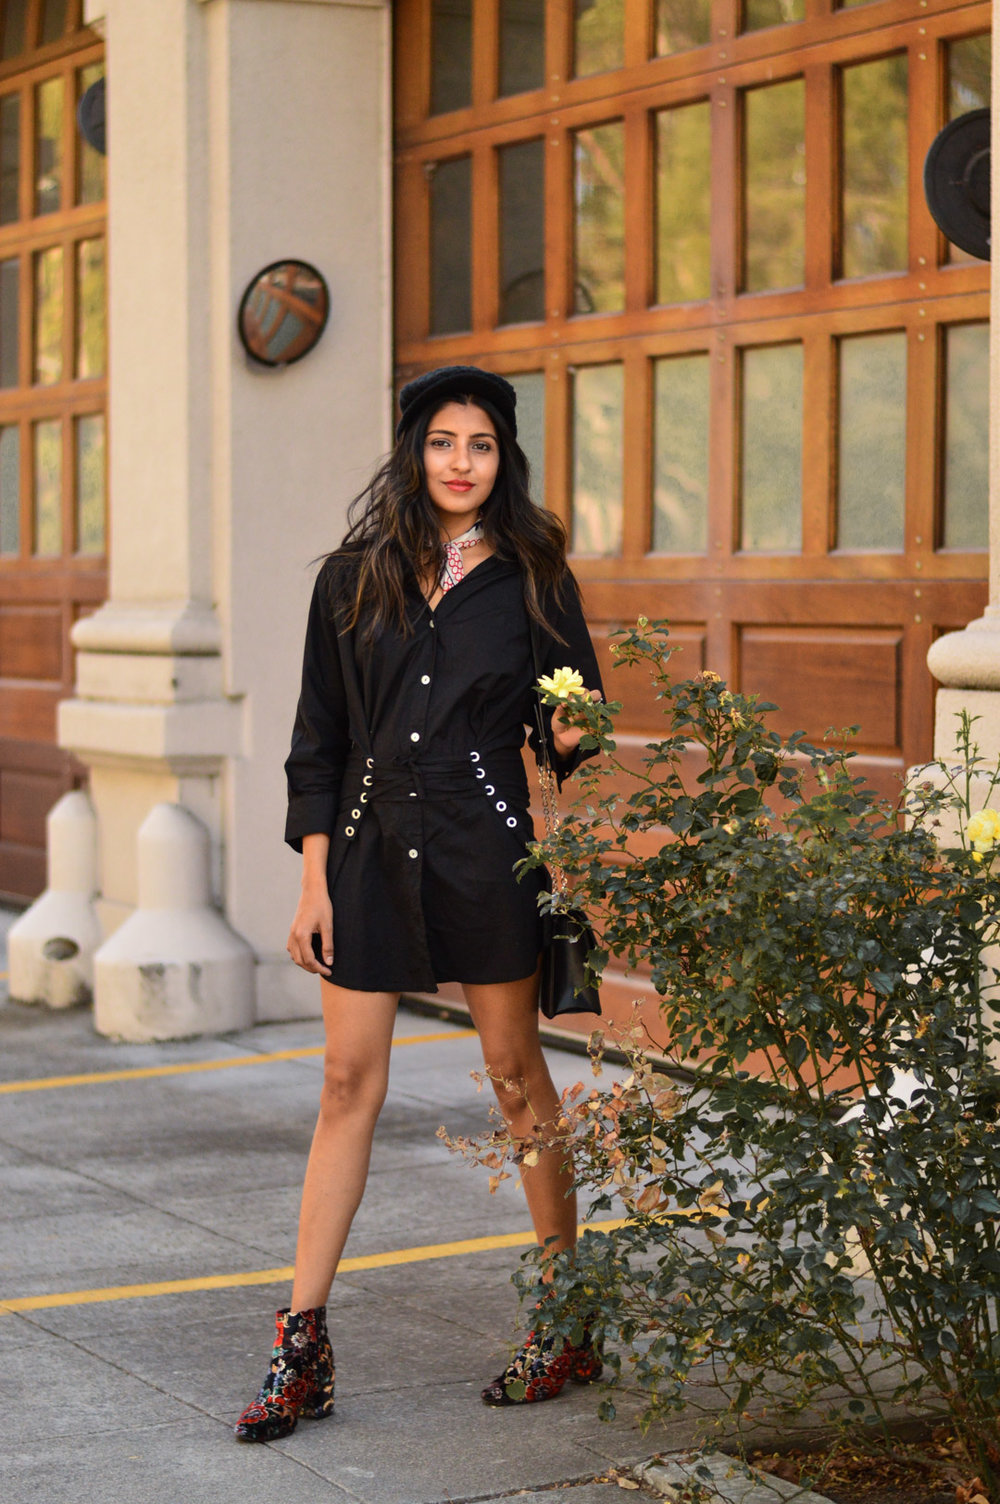 corset-shirtdress-silk-scarf-floral-velvet-boots-blogger-outfit 5